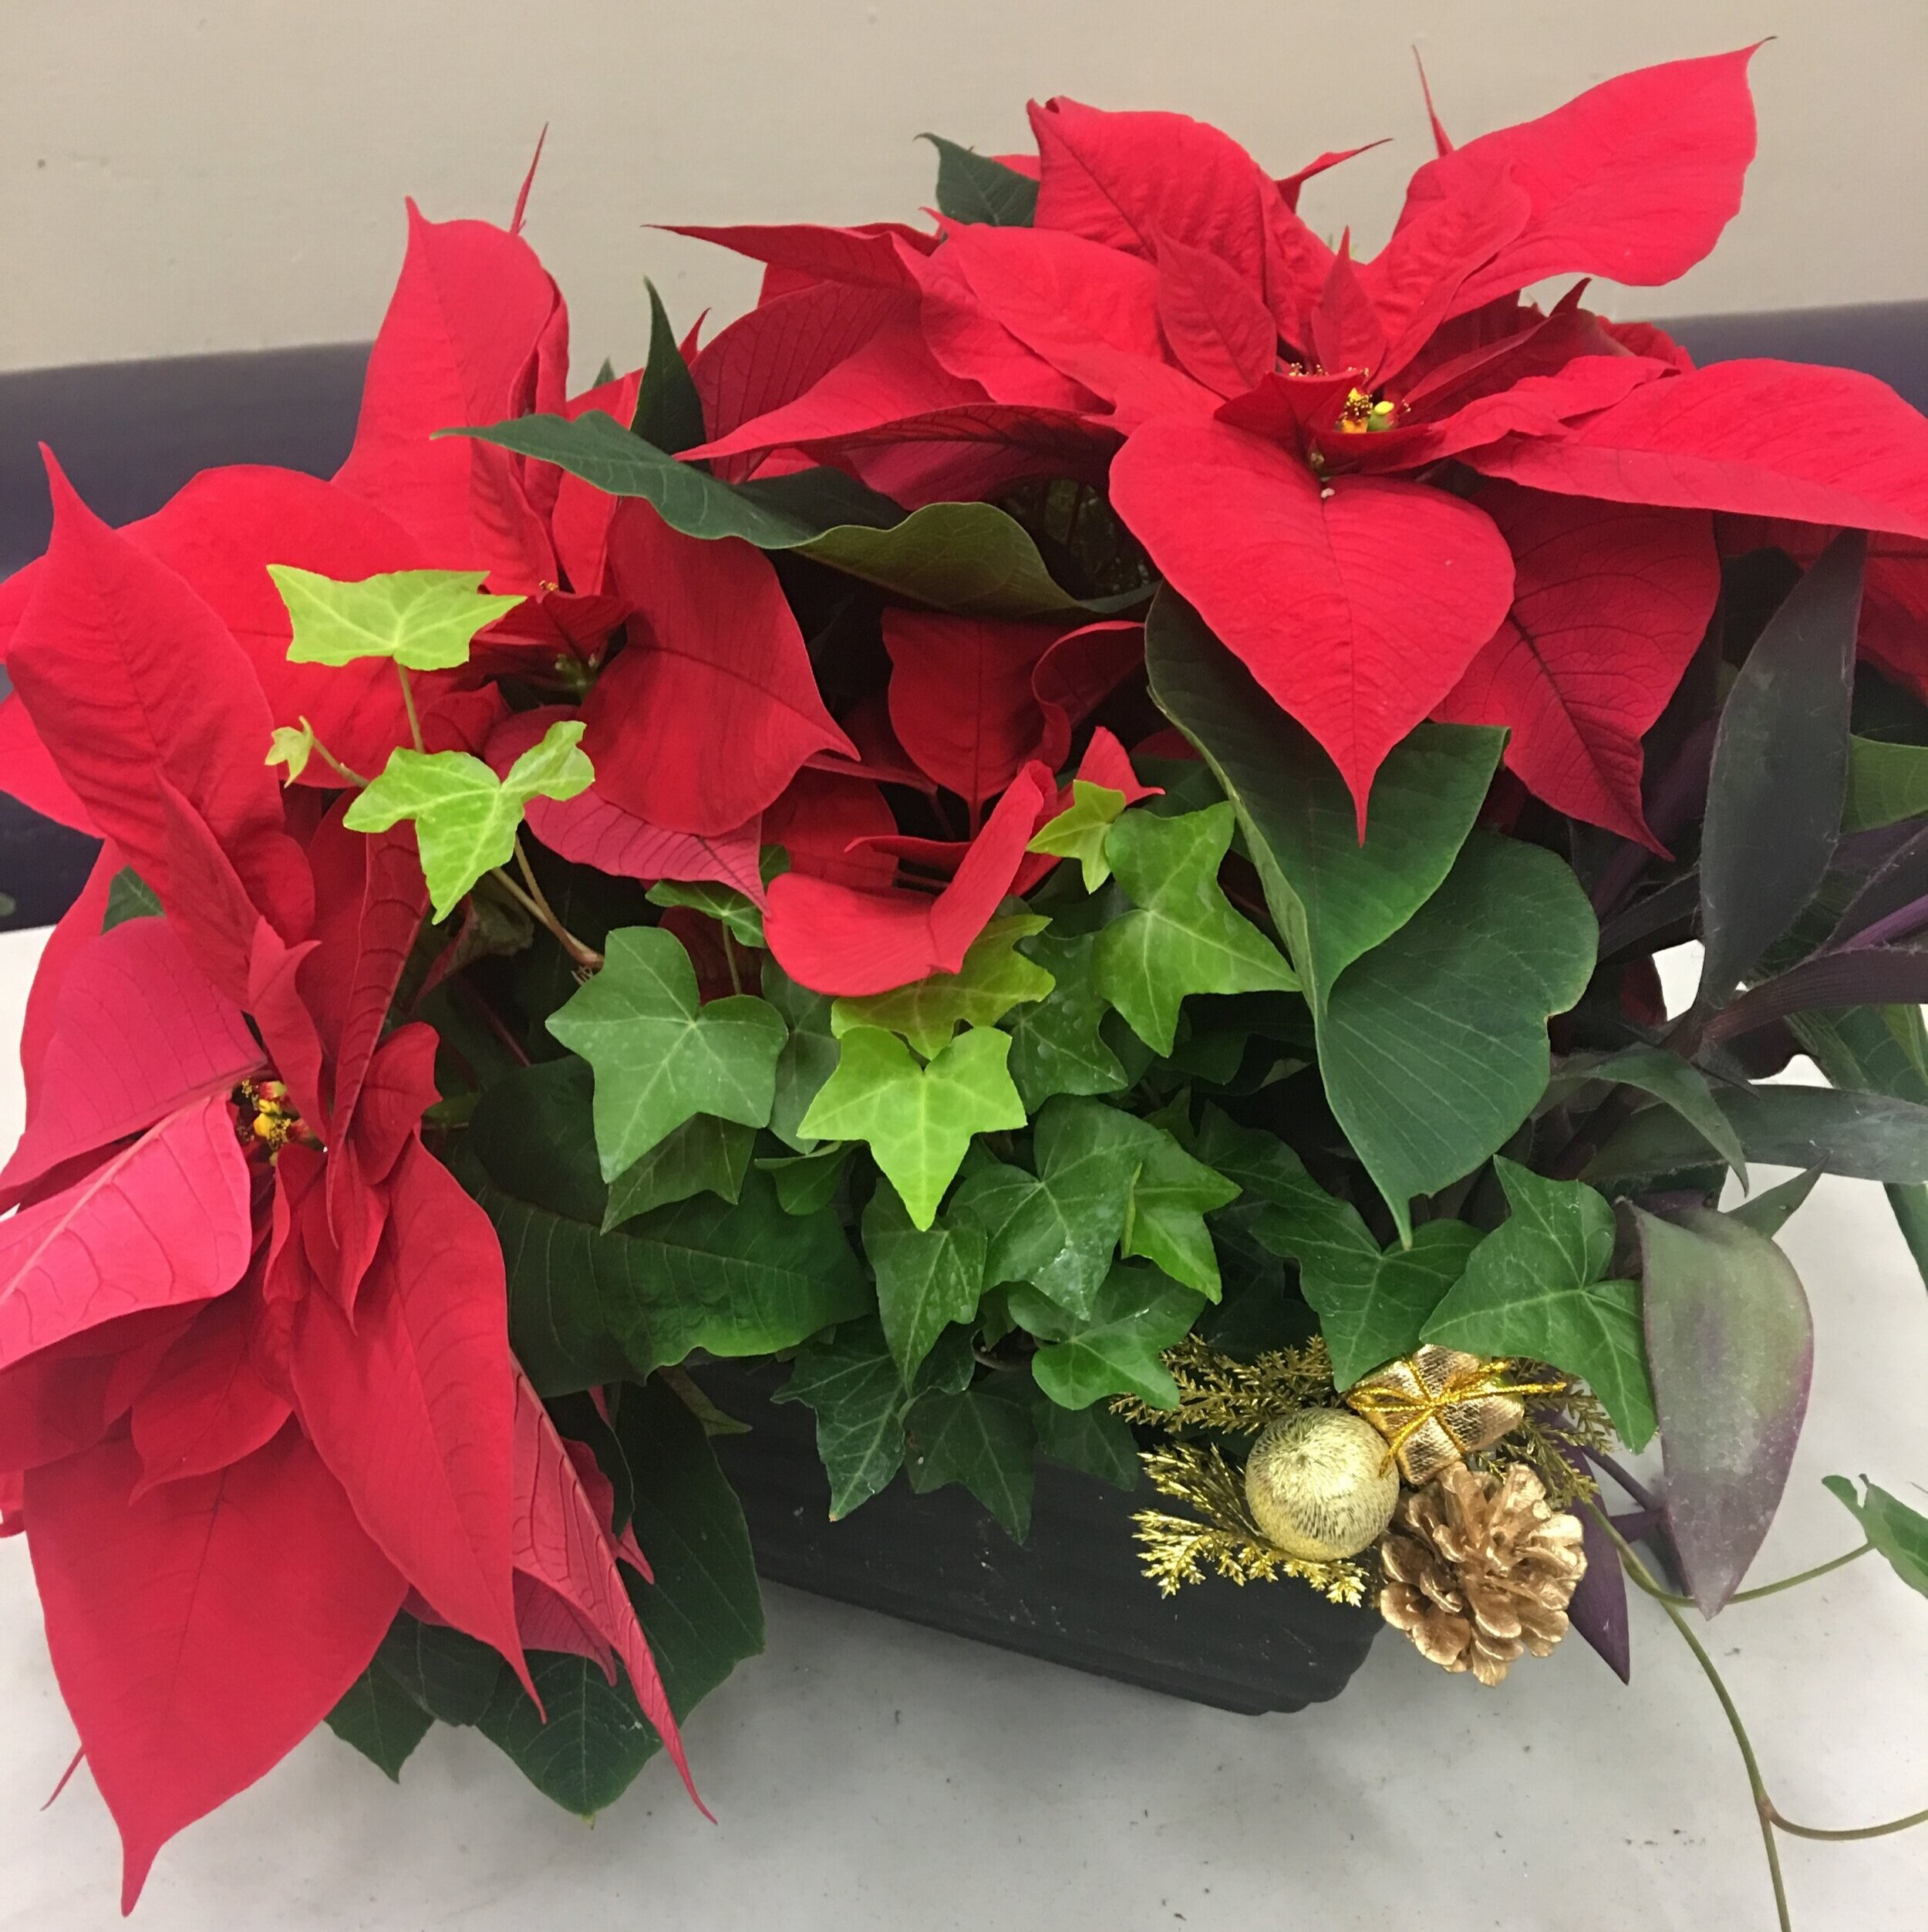 From last year's delivery, this is the Yuletide Treasurer planter.